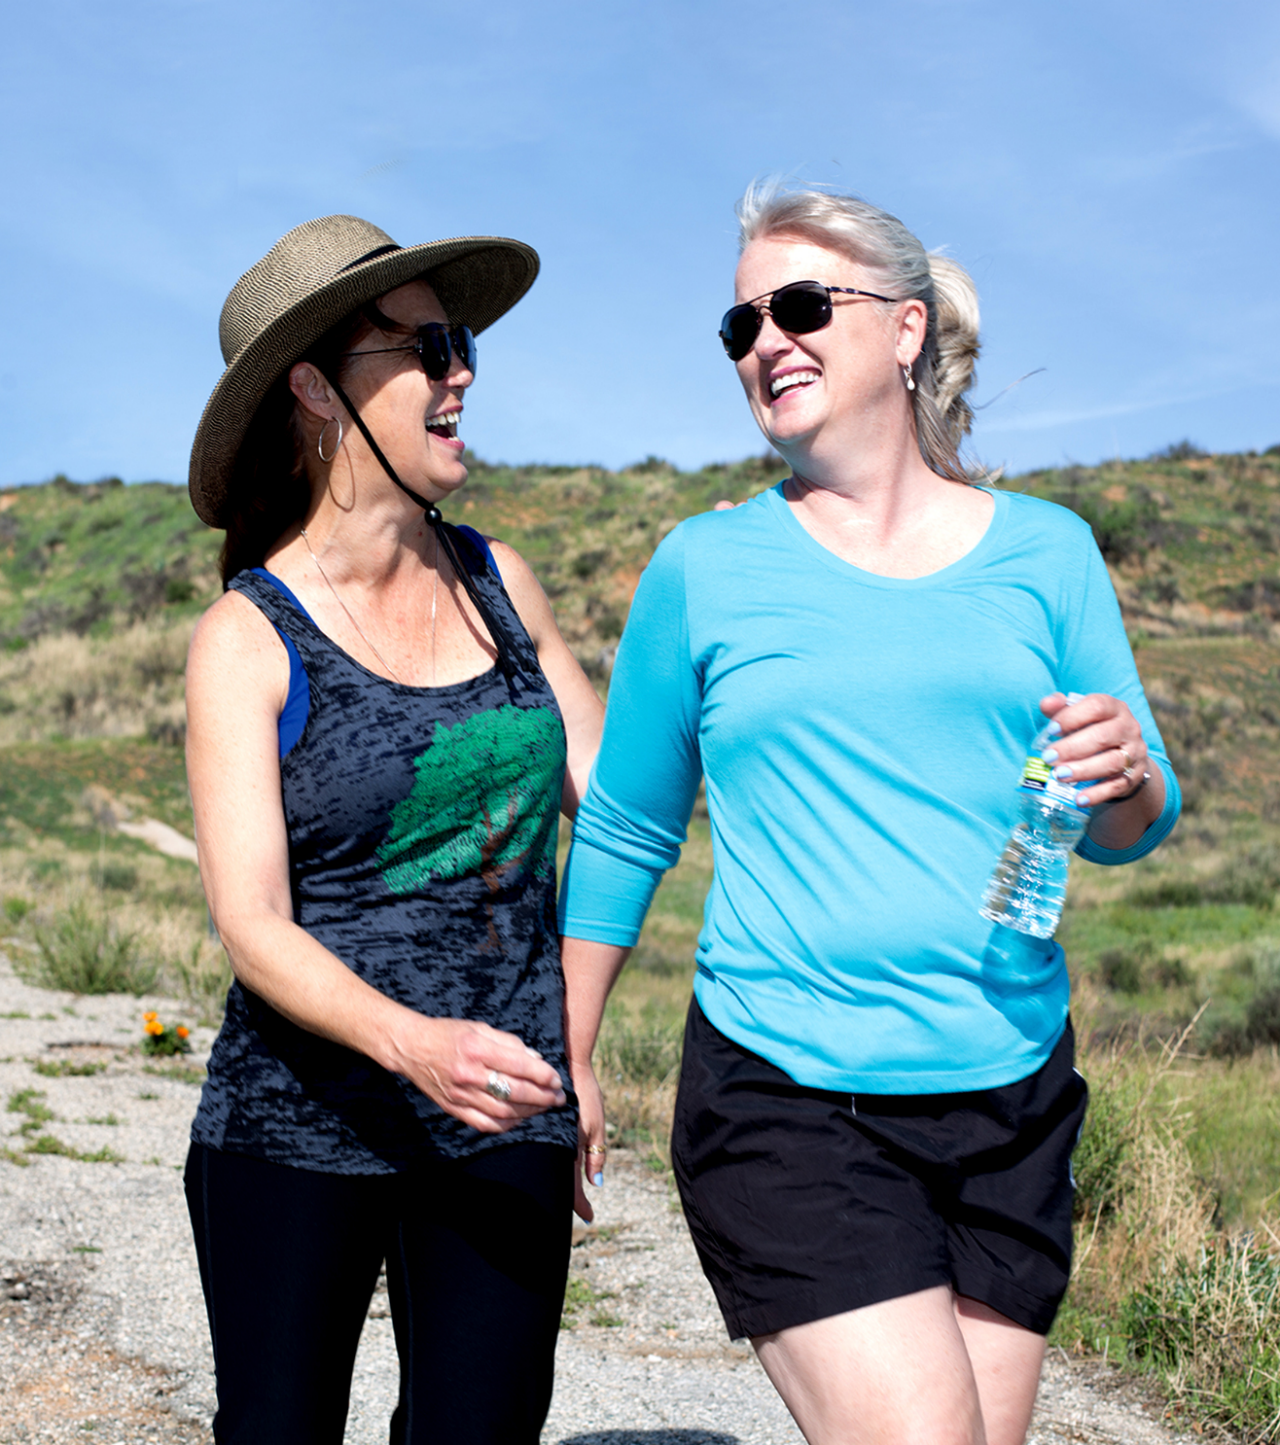 Two women hiking and talking.